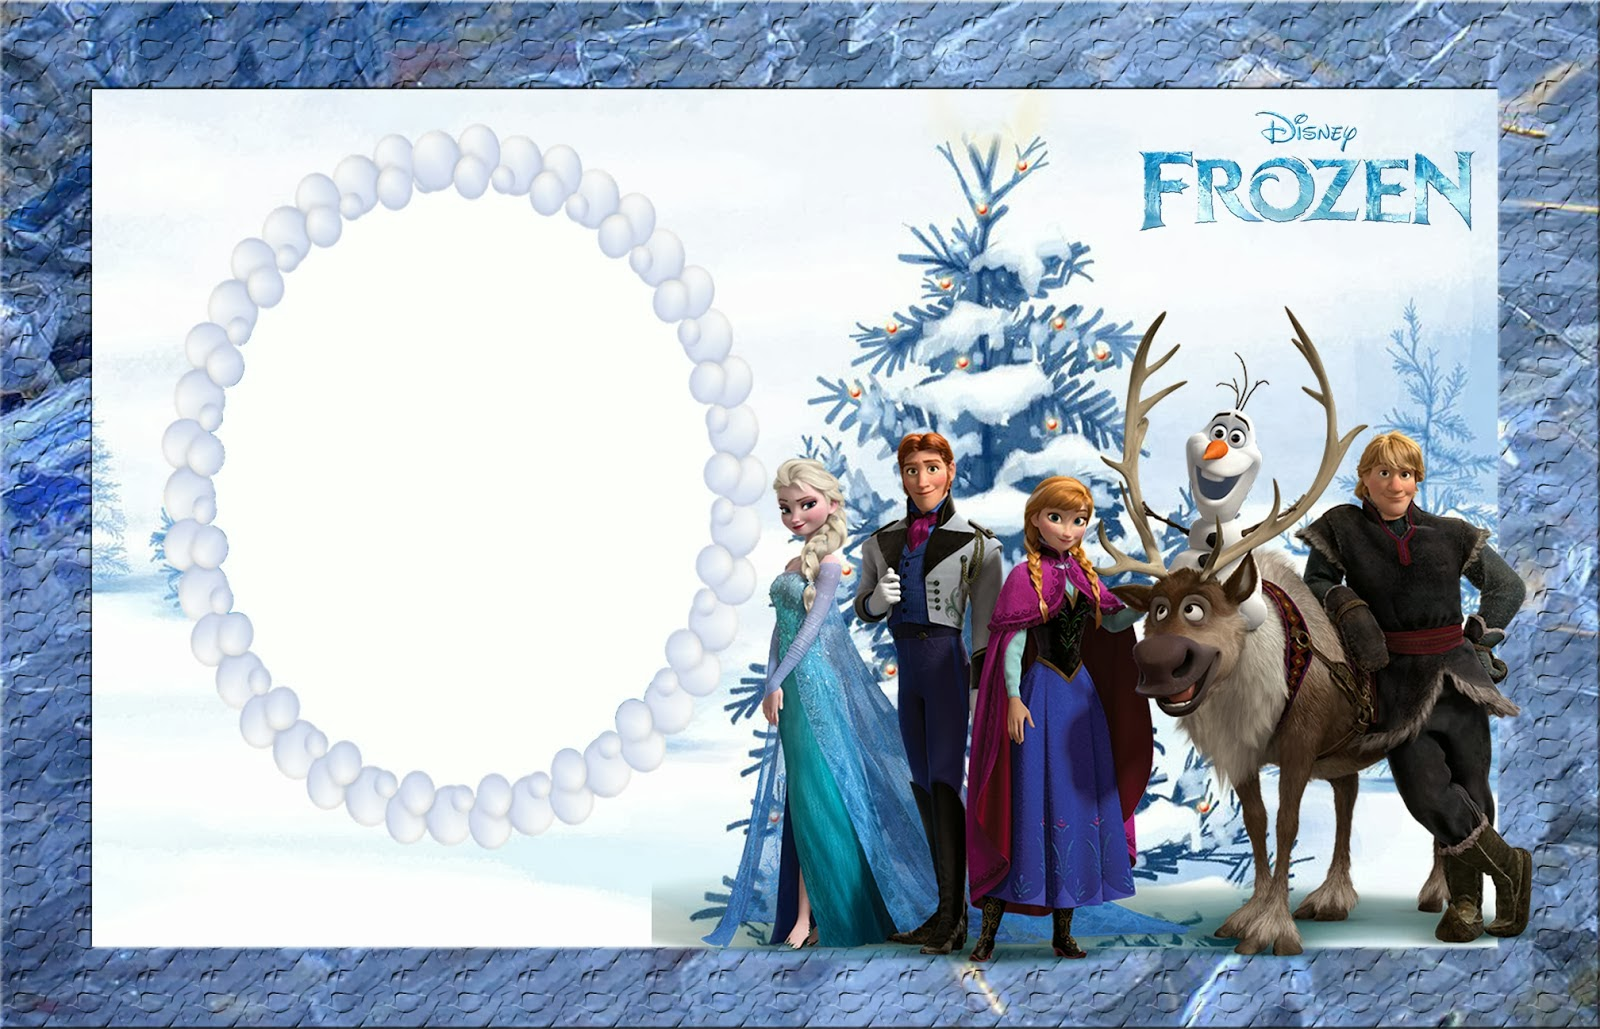 #336D98 Frozen Images Disneyfrozen02 HD Wallpaper And Background  5497 decorations de noel reine des neiges 1600x1029 px @ aertt.com